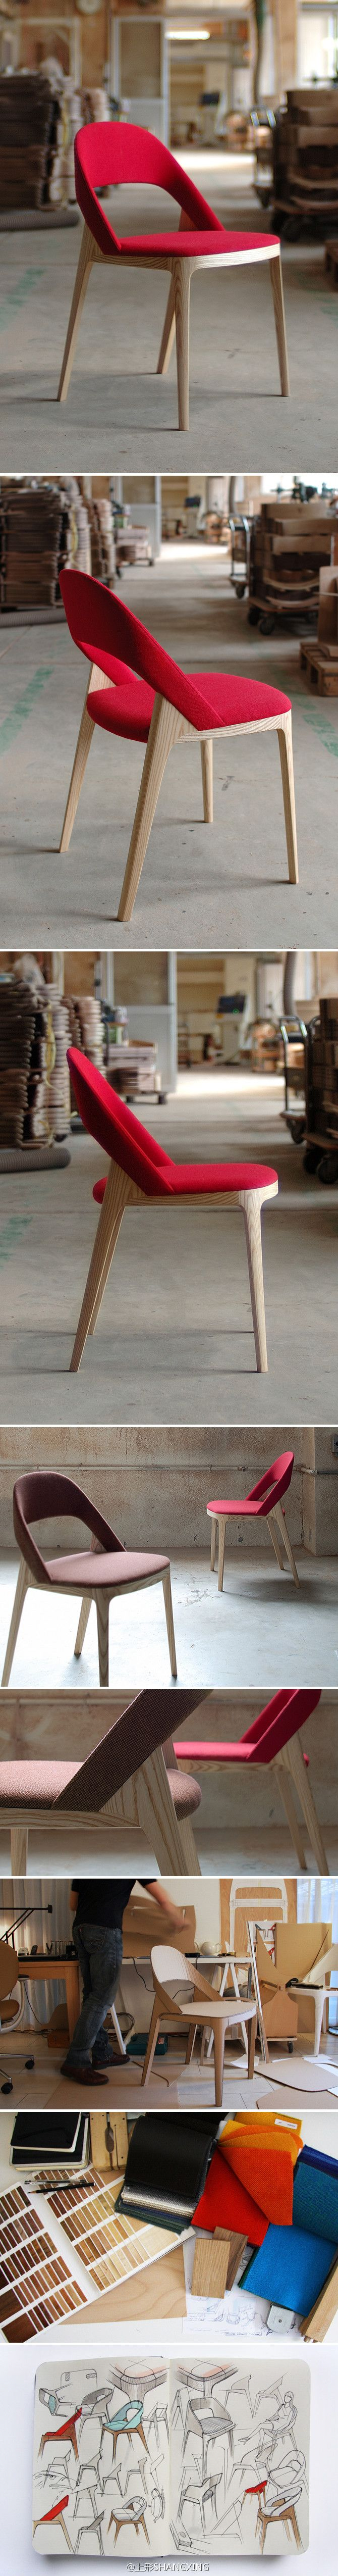 Clamp Chair | http://www.andreaskowalewski.com/ source ideasforbeautypic.com